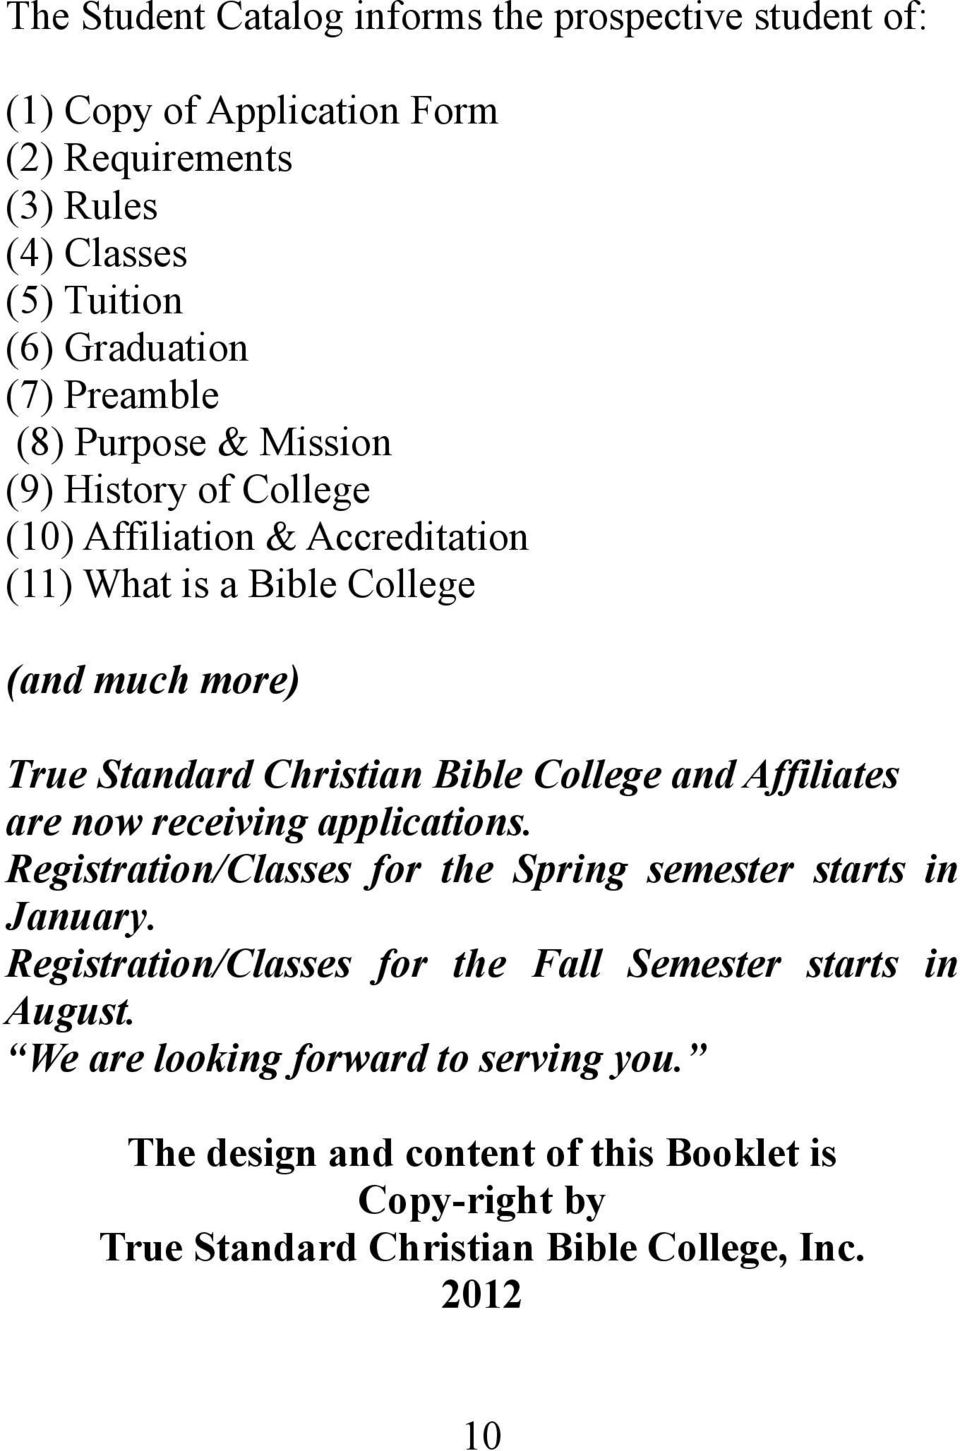 Bible College and Affiliates are now receiving applications. Registration/Classes for the Spring semester starts in January.